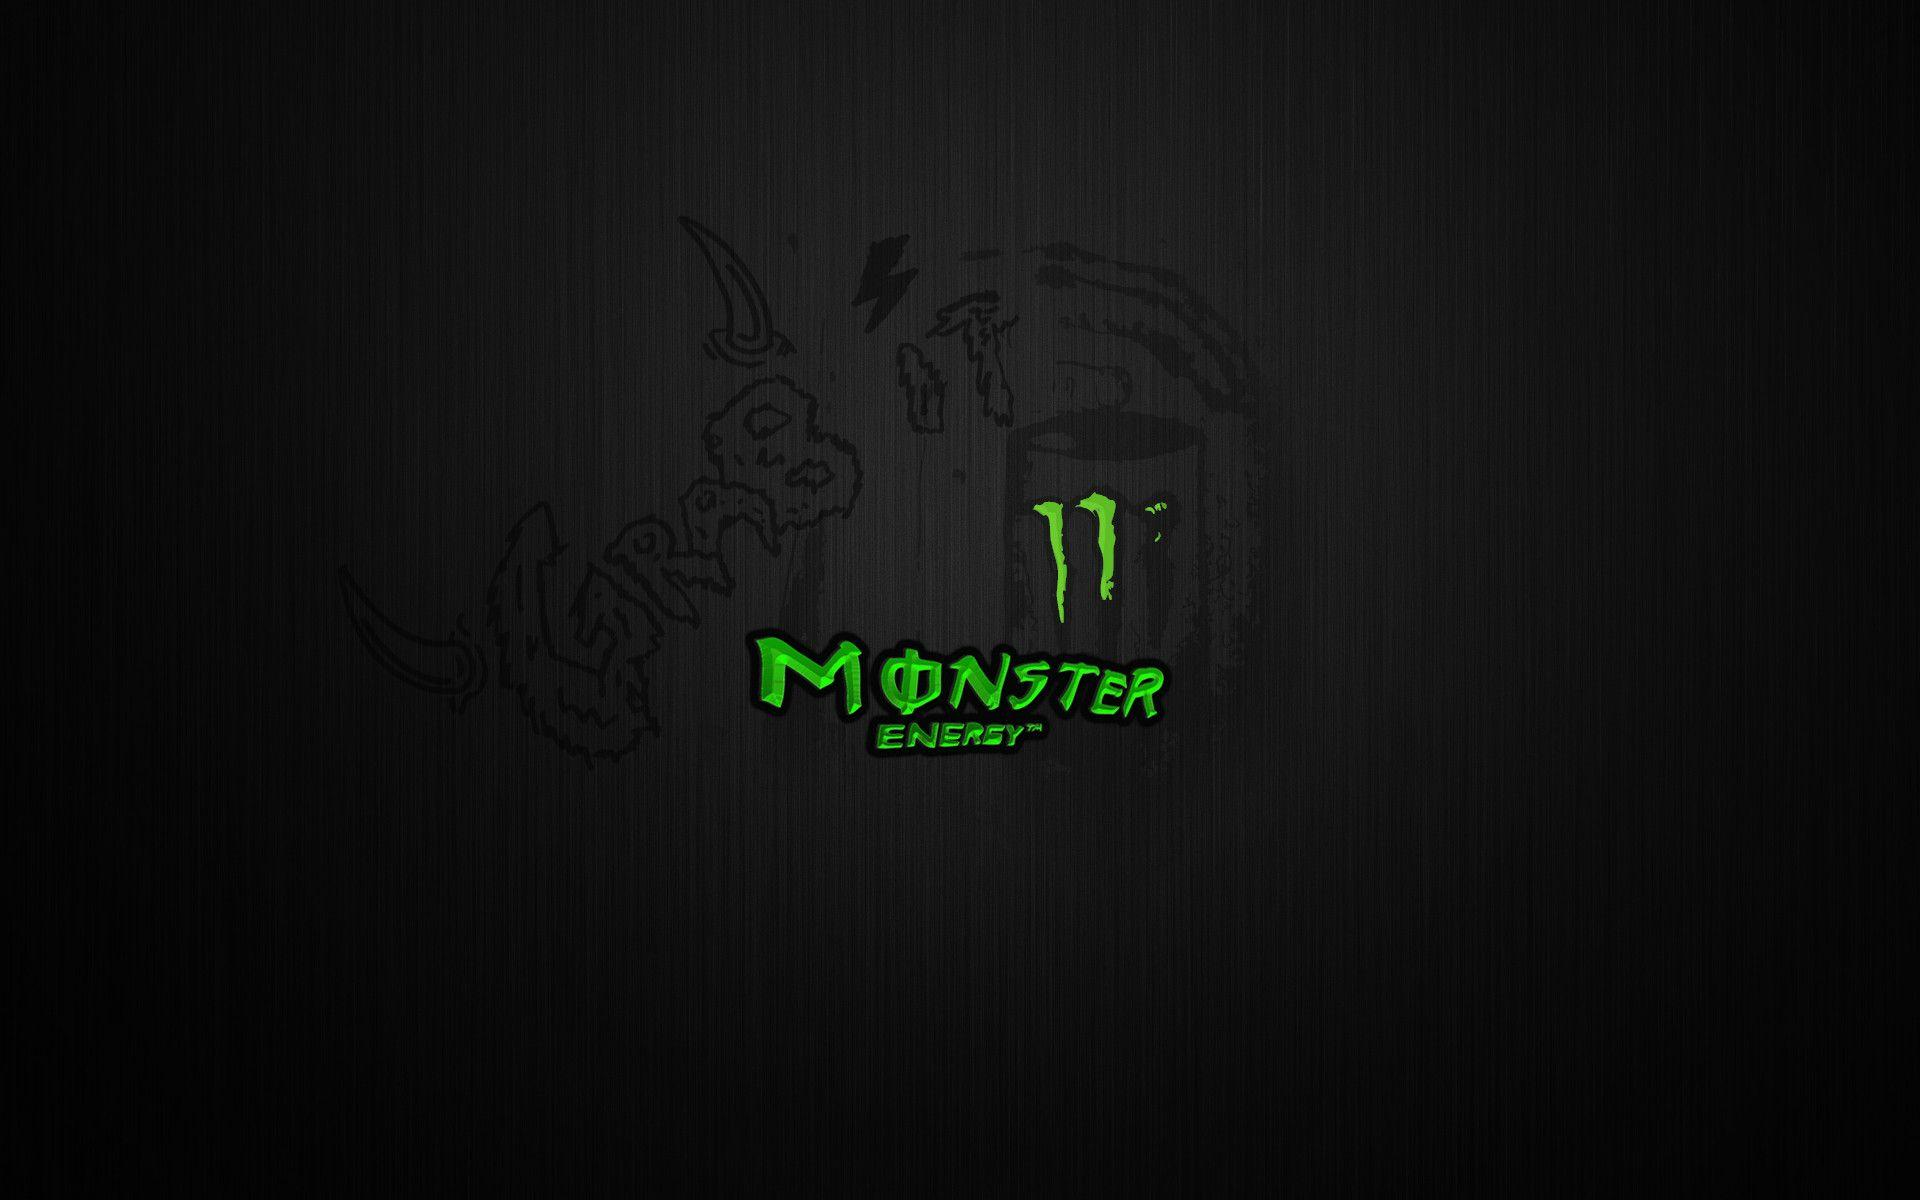 Monster Energy Wallpapers - Full HD wallpaper search - page 2